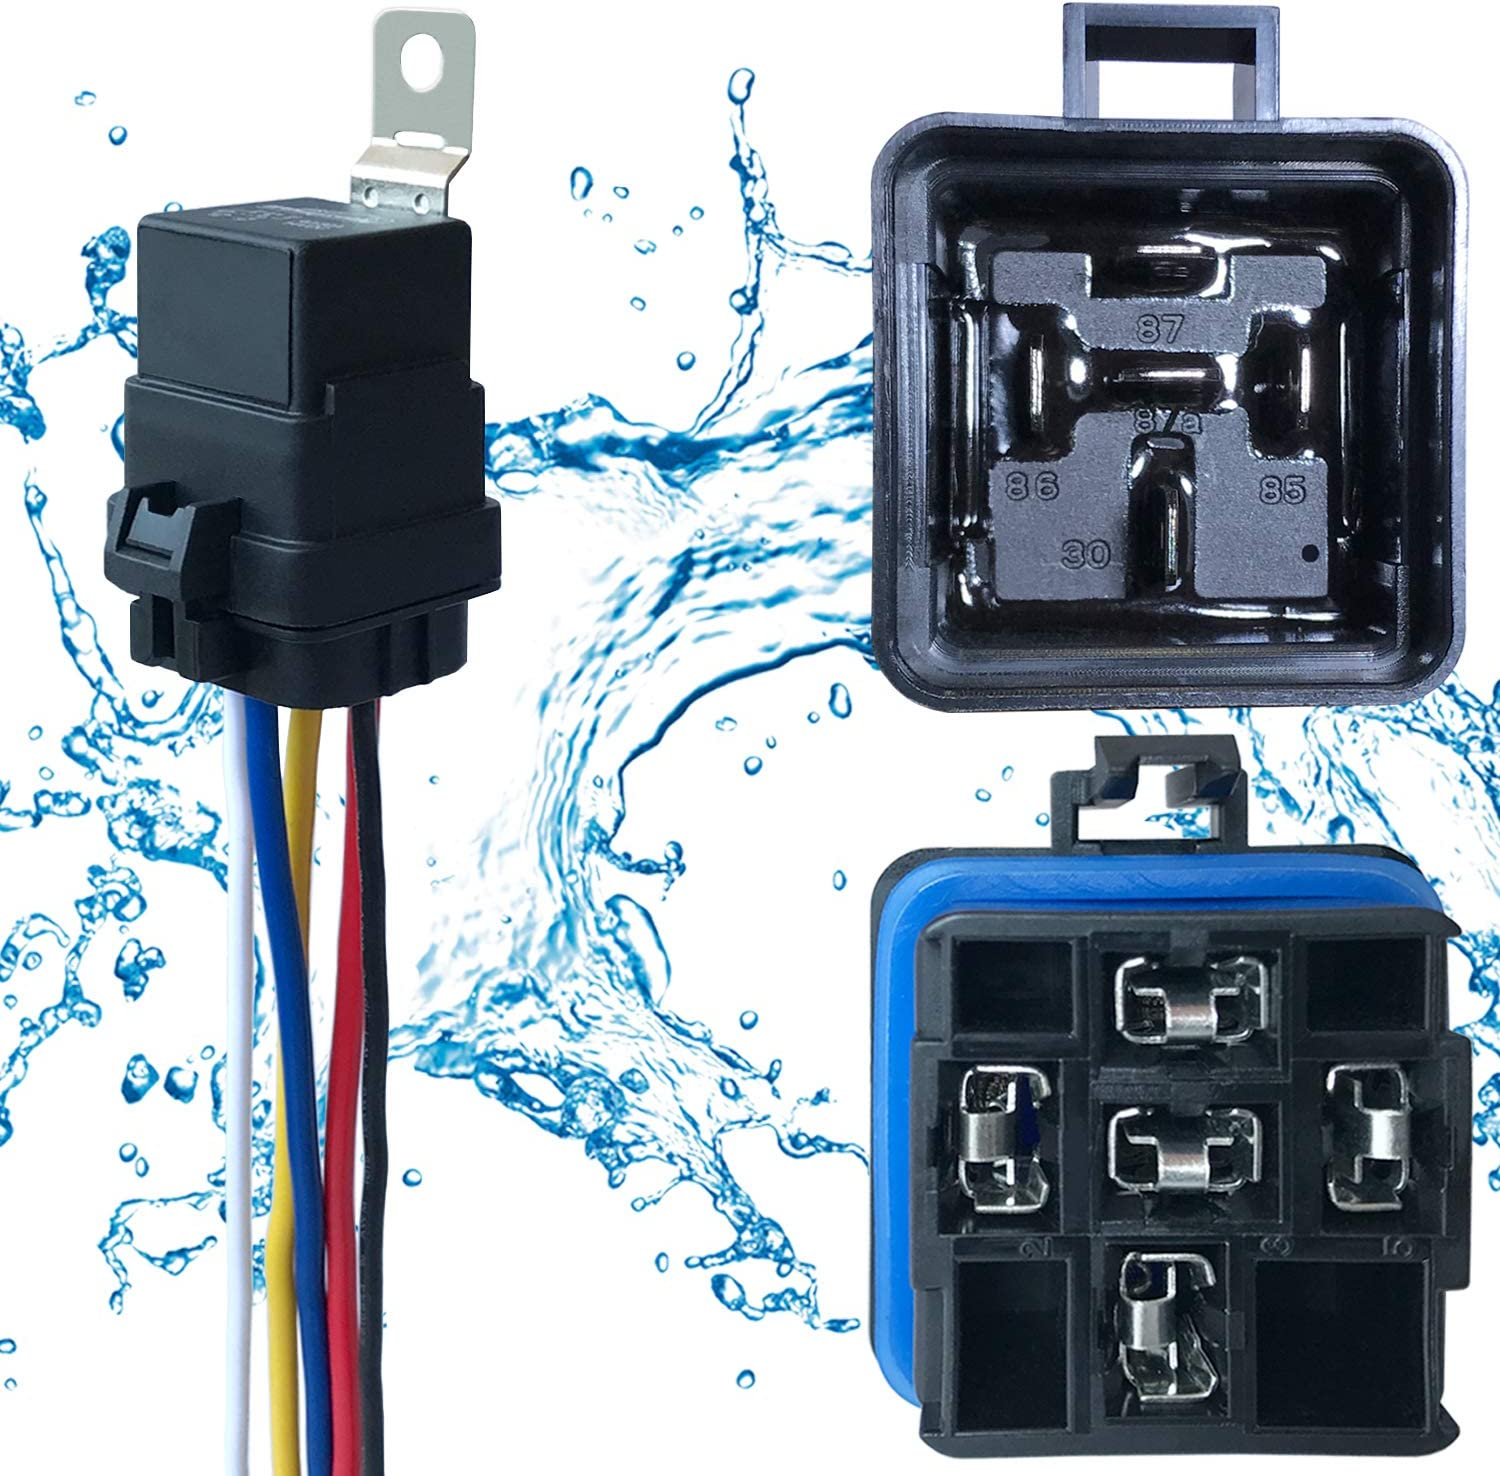 1 PACK 40/30 AMP 12 V DC Waterproof Relay and Harness - Heavy Duty 12 AWG Tinned Copper Wires, 5-PIN SPDT Bosch Style Automotive Relay: Automotive